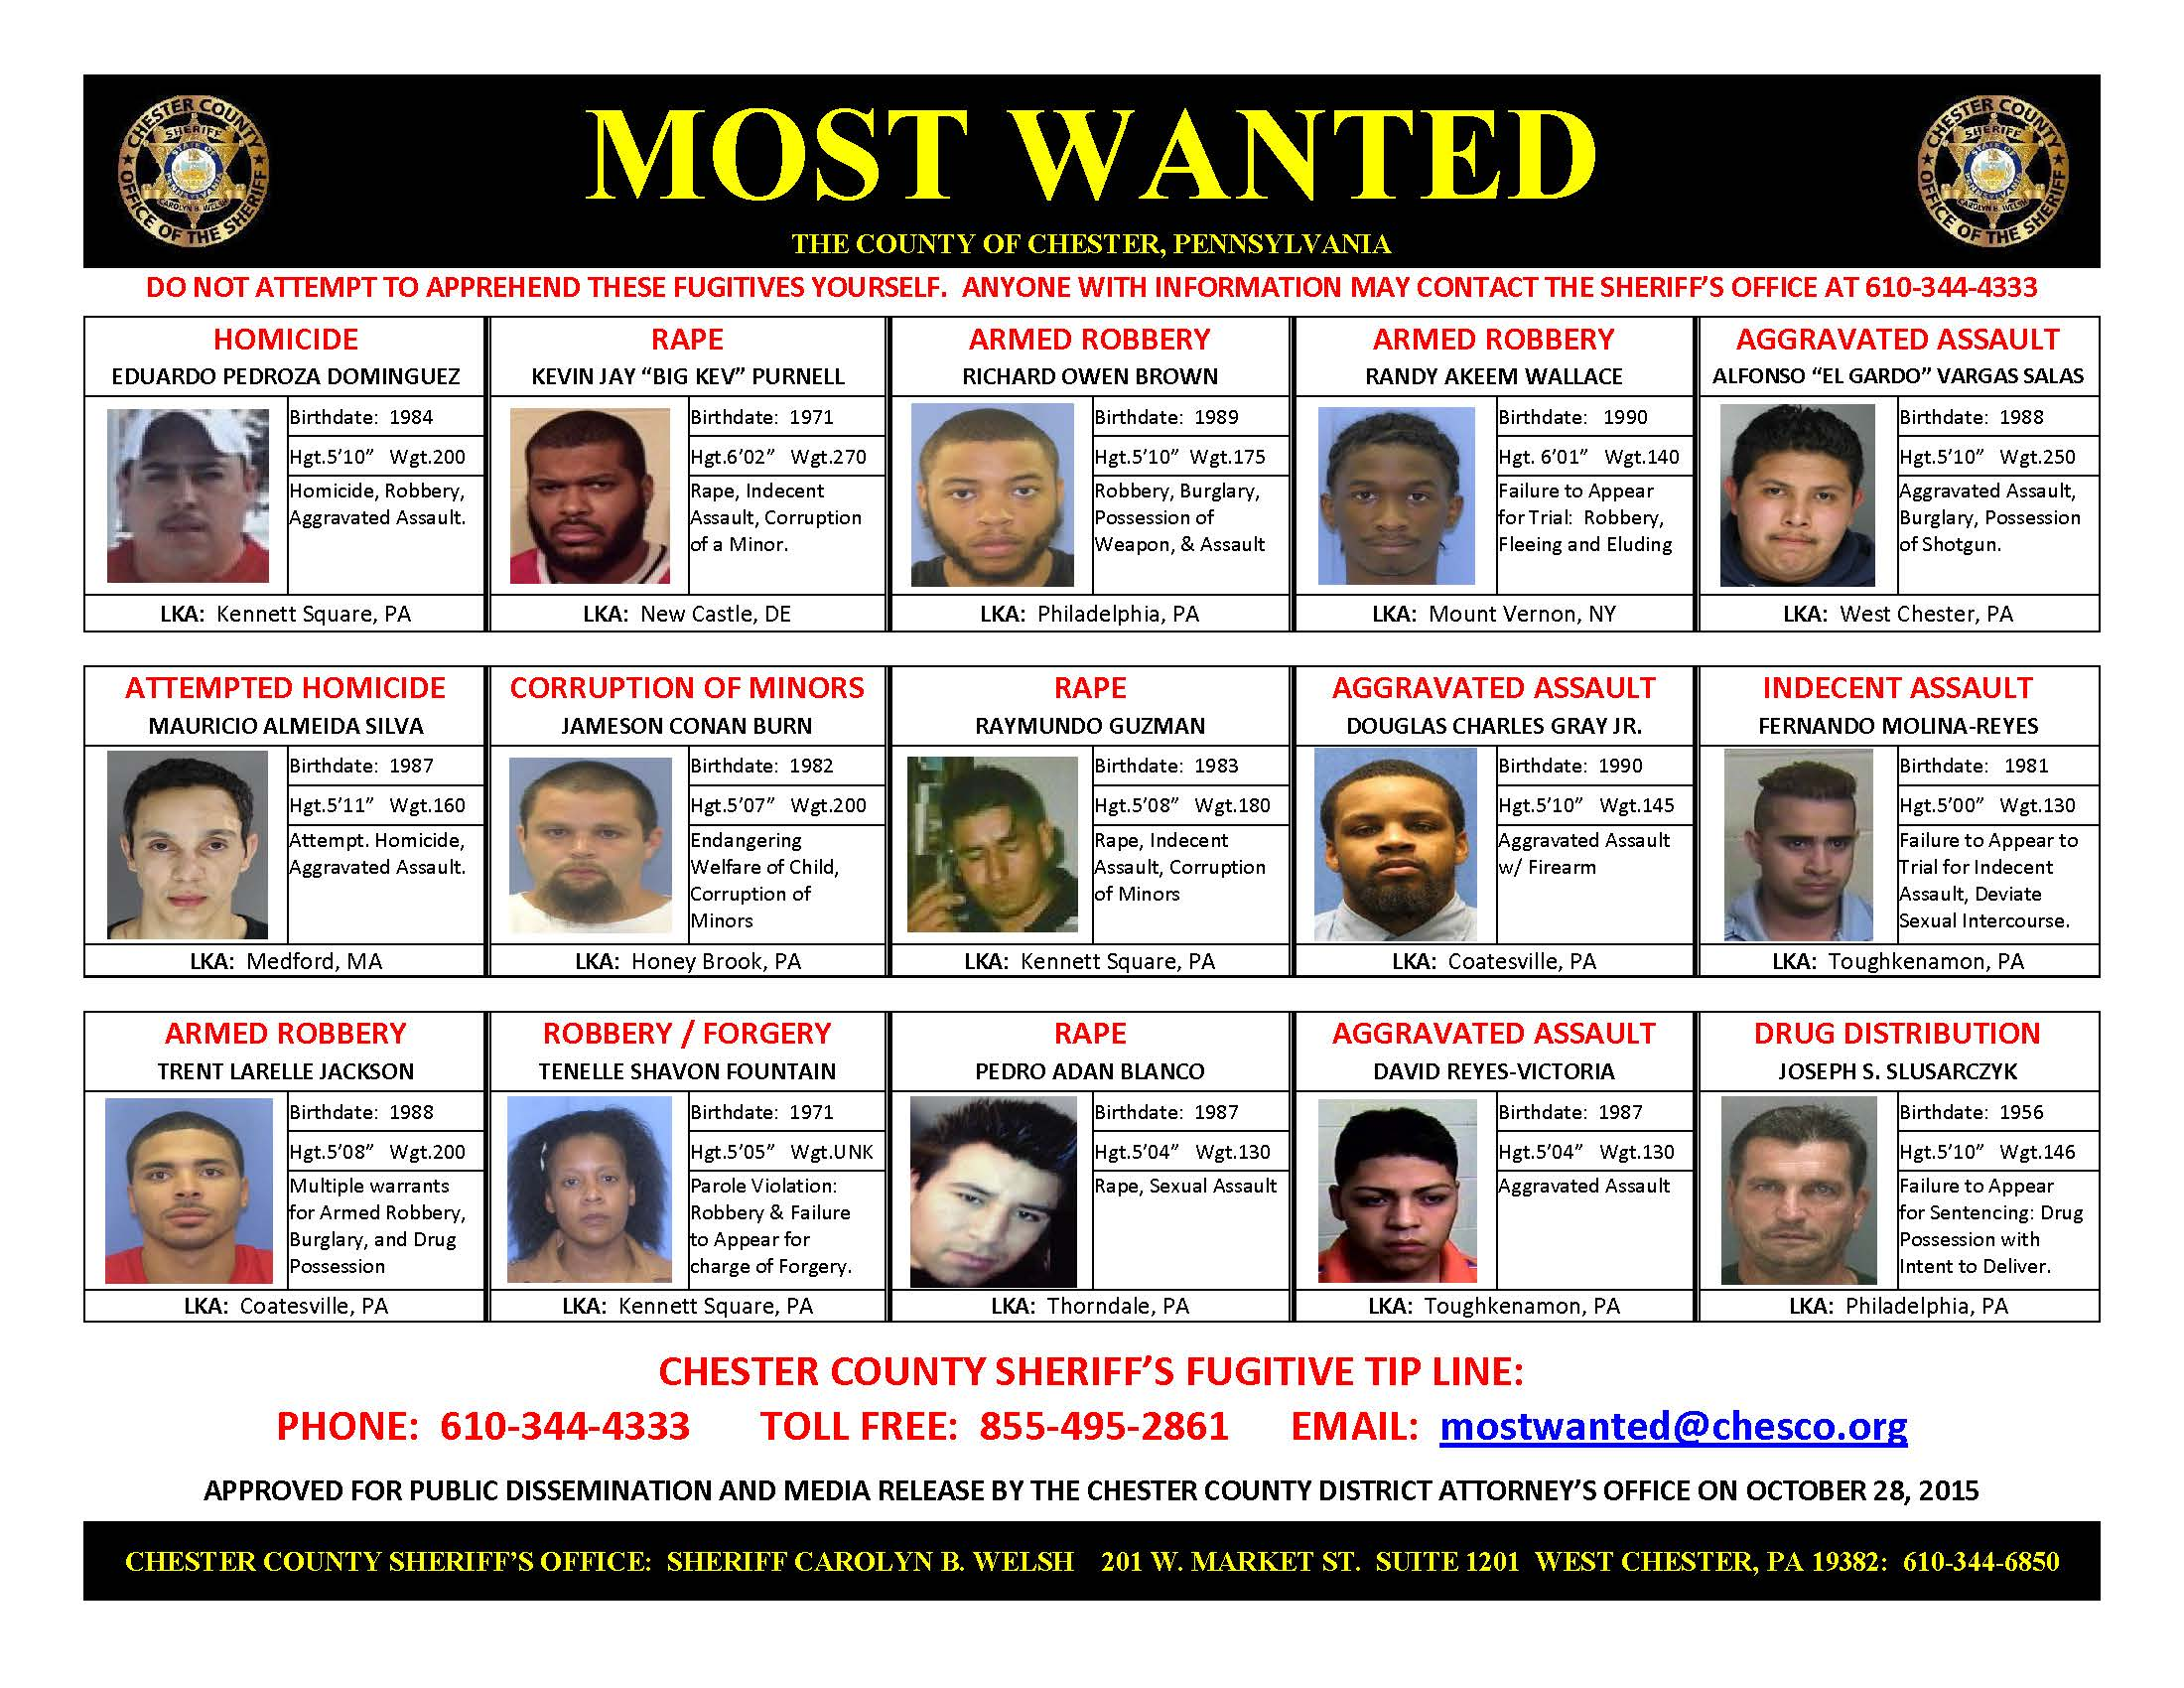 Chester County Updates 'Most Wanted' List | Phoenixville, PA